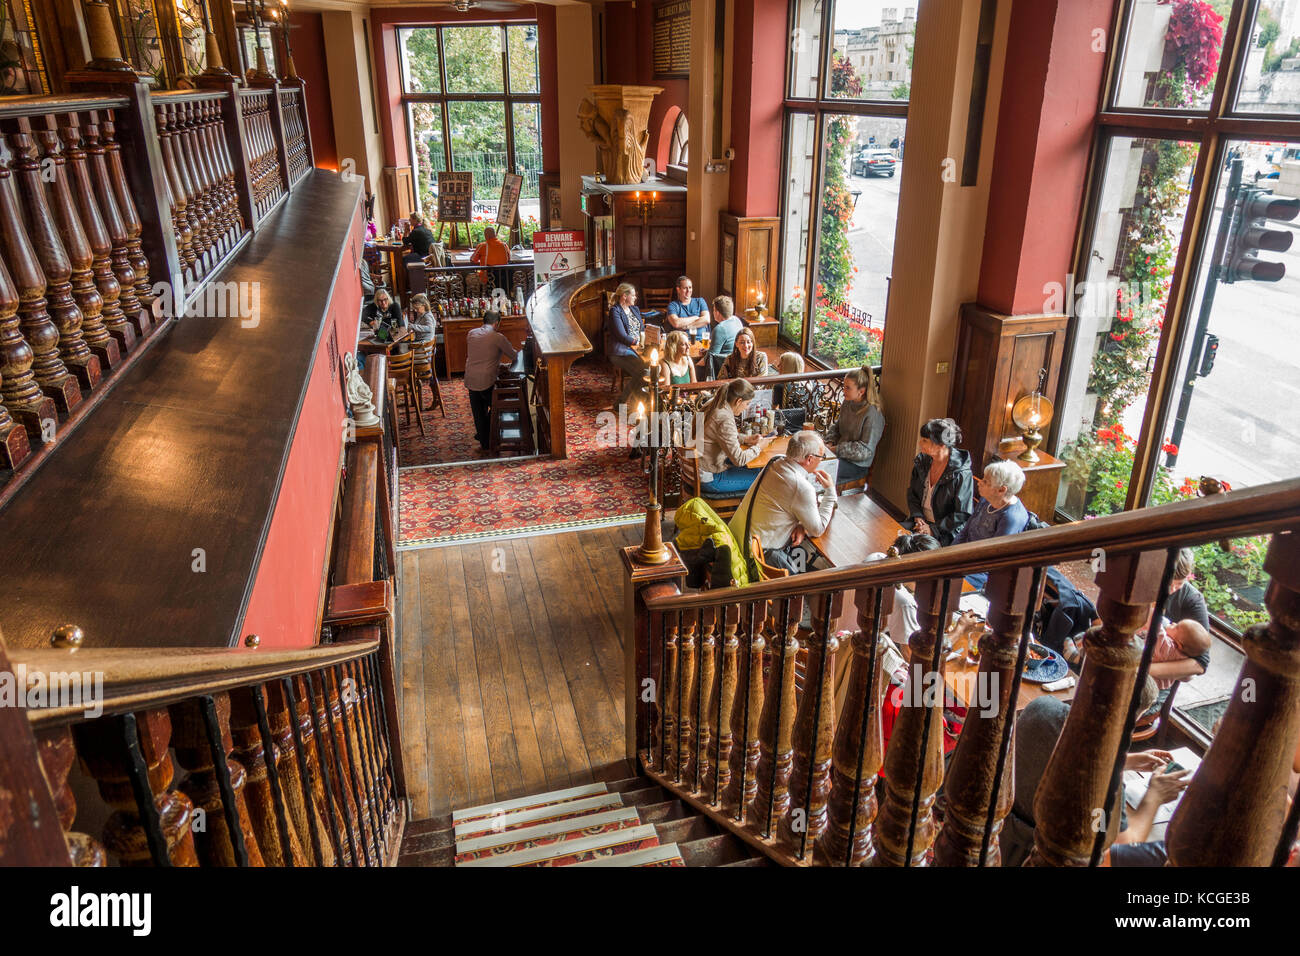 Historic, 17th century, Liberty Bounds JD Wetherspoon (Wetherspoons) bar / pub / restaurant in Tower Hill, London, - Stock Image